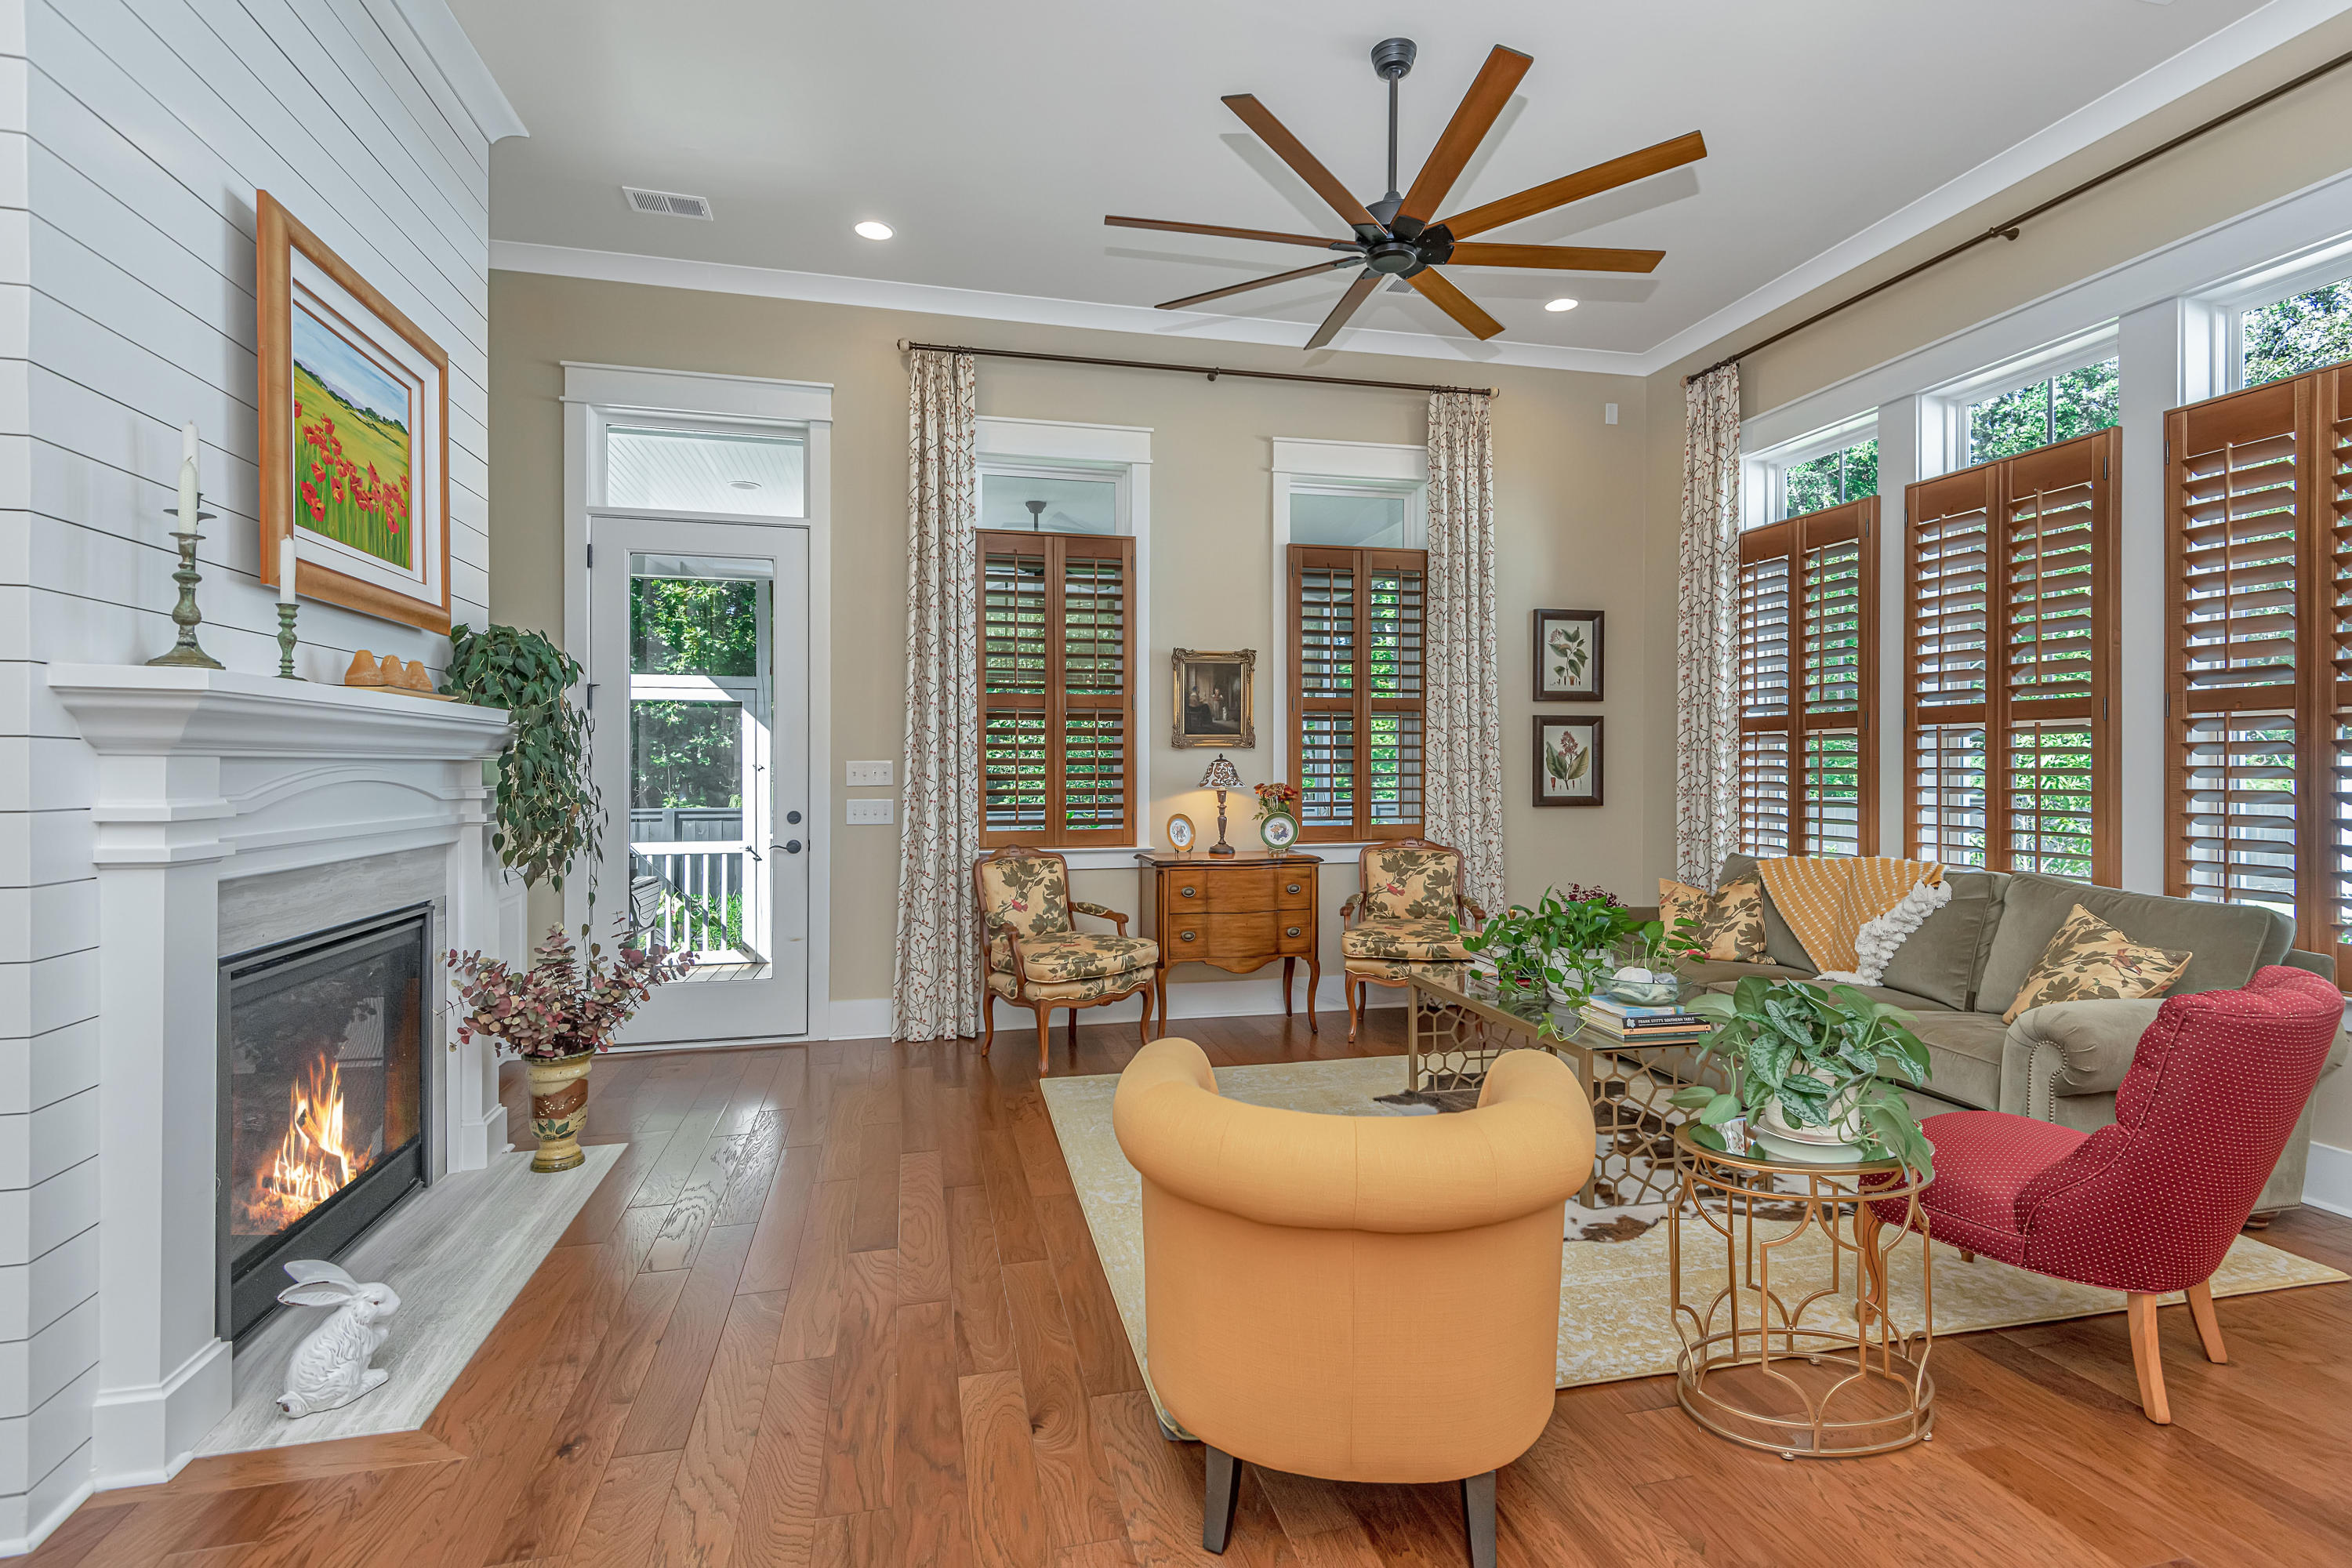 Dunes West Homes For Sale - 2870 Clearwater, Mount Pleasant, SC - 40